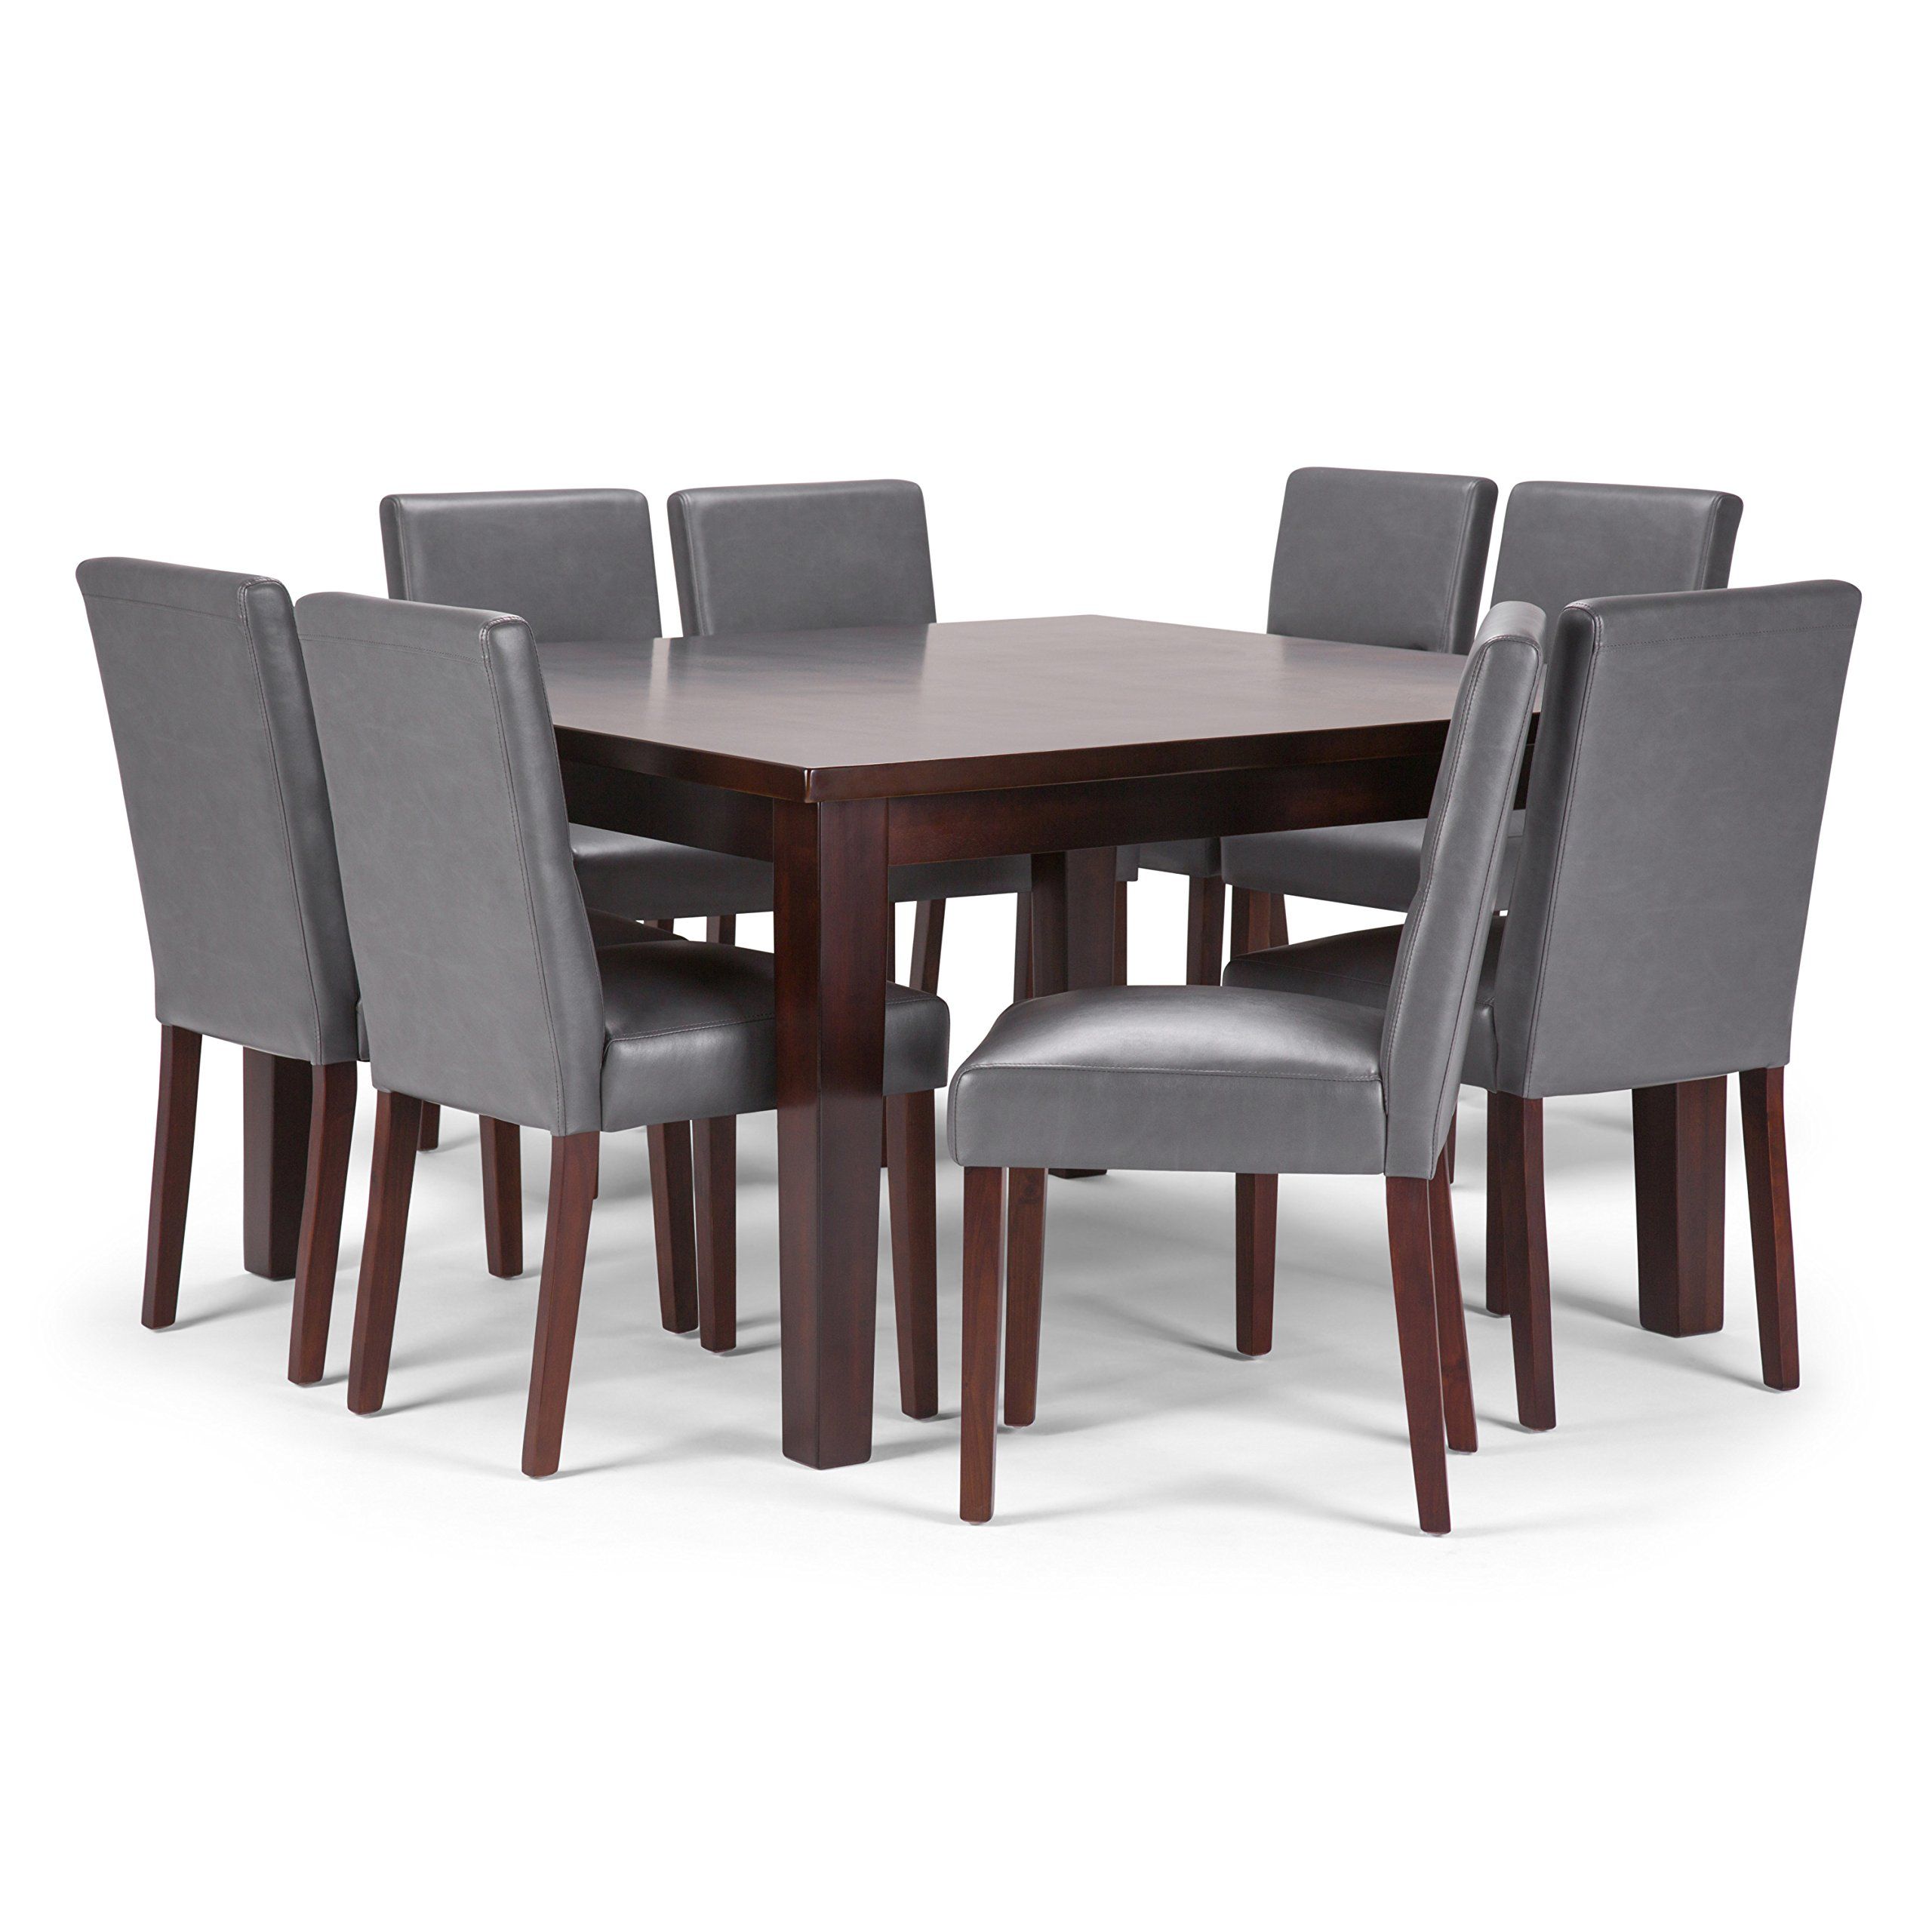 Formal Dining Table 8 Chairs Chair Pads Amp Cushions